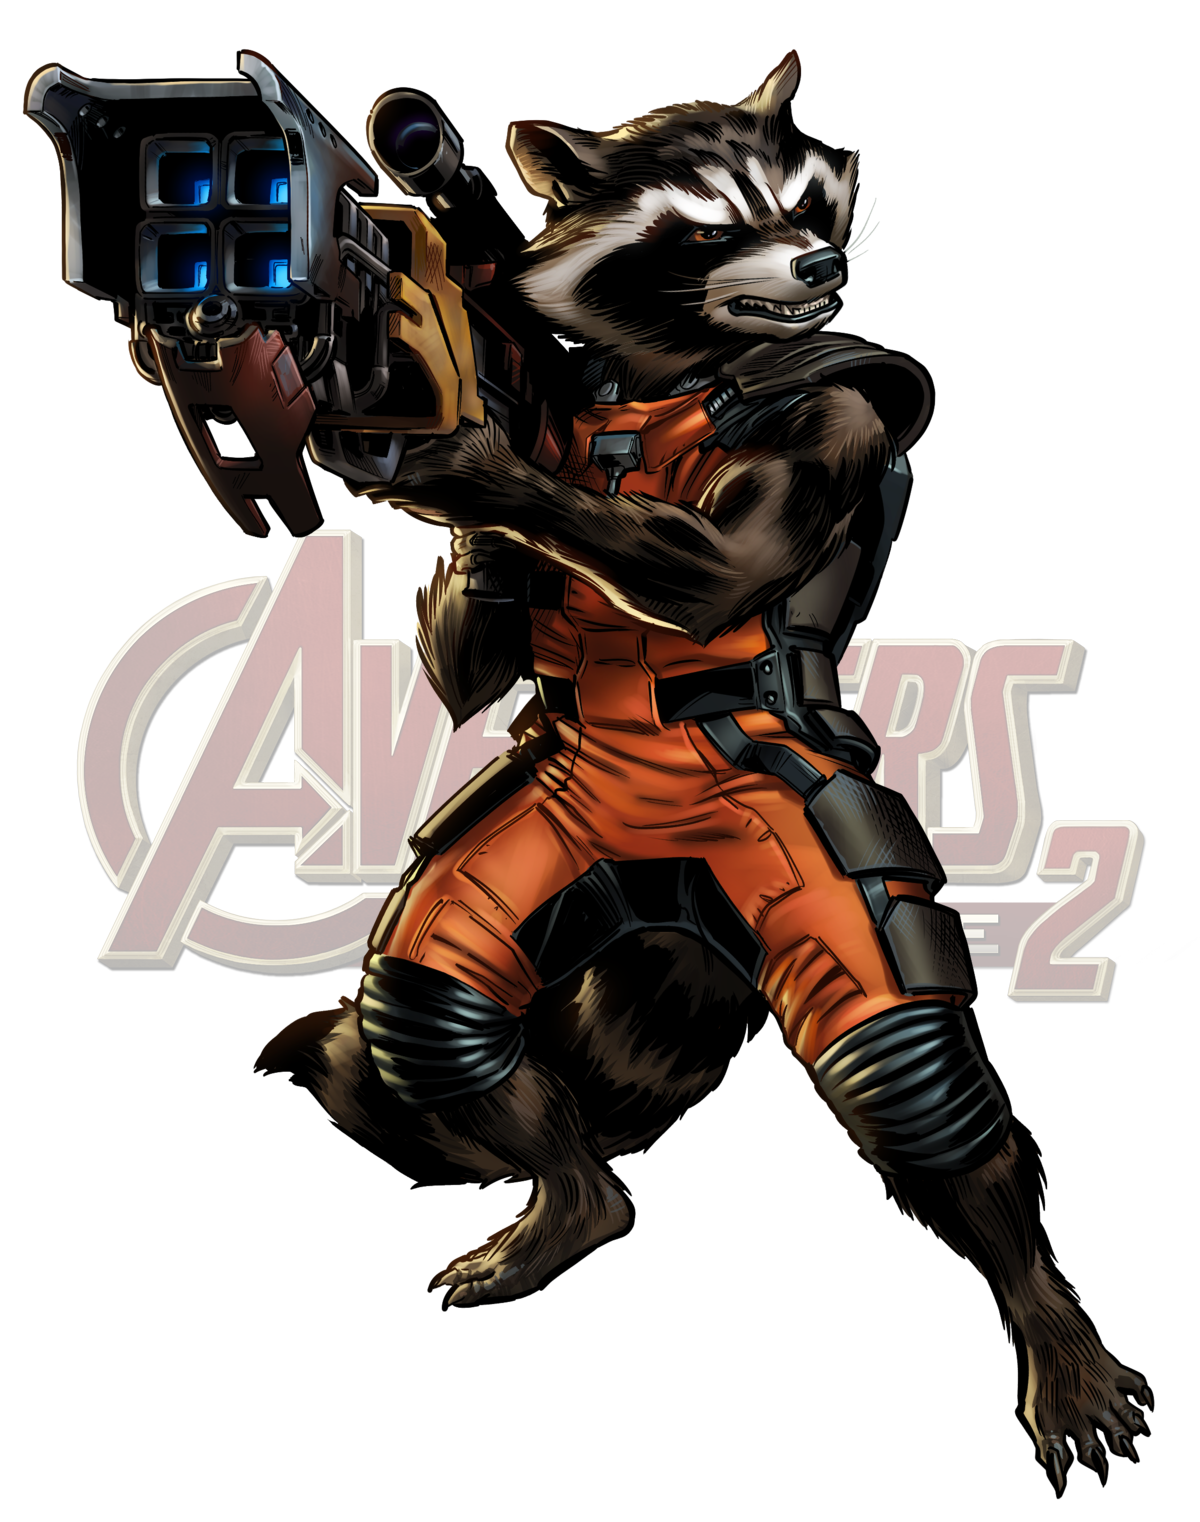 Groot transparent marvel avengers alliance. Rocket raccoon wikia fandom